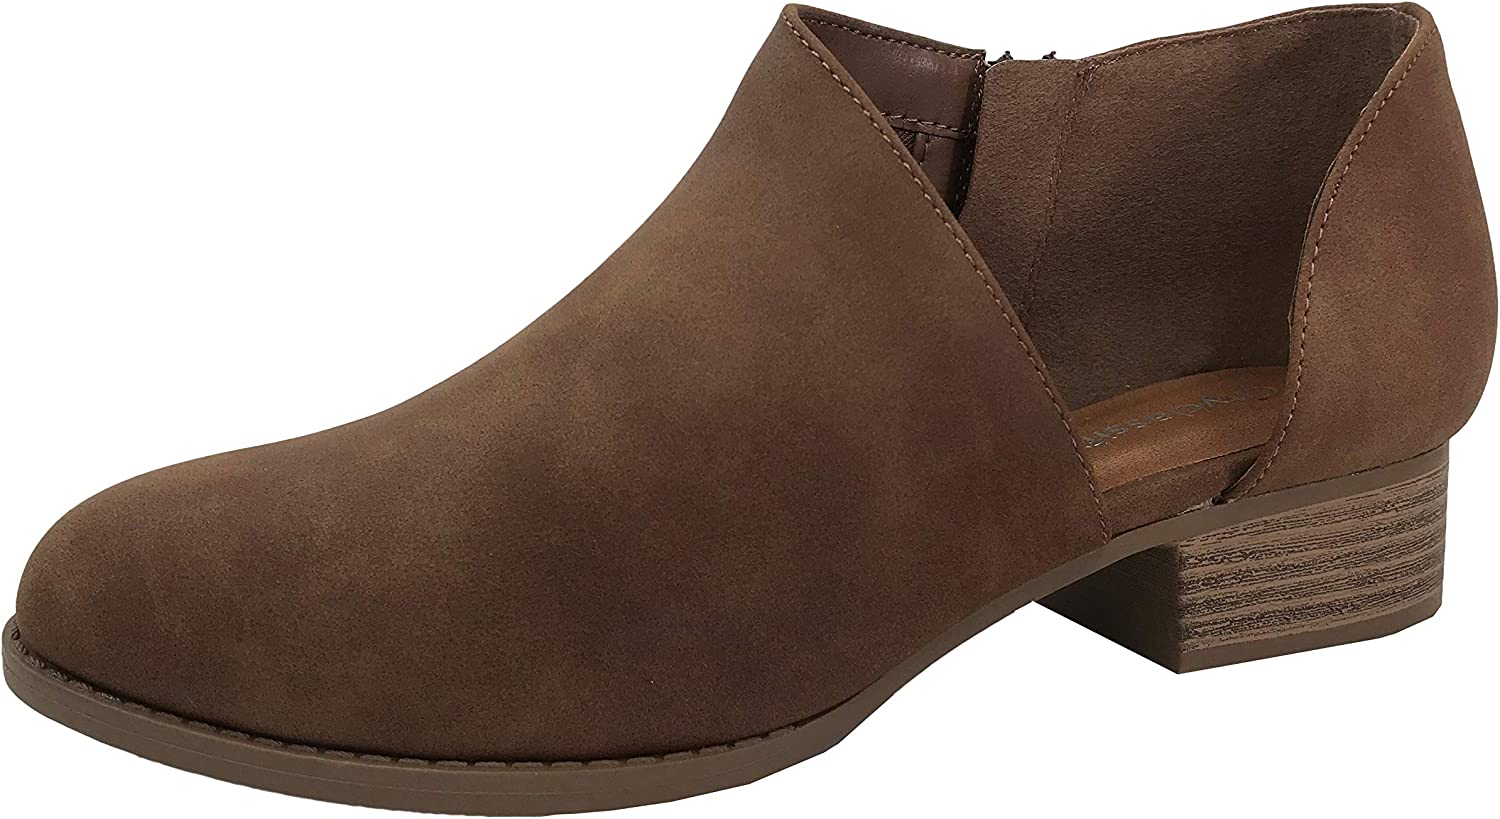 CITYCLASSIFIED Womens Ankle Bootie D'Orsay Cut Out Perforated Open Side Closed Toe, Chestnut, 8.5 Cognac